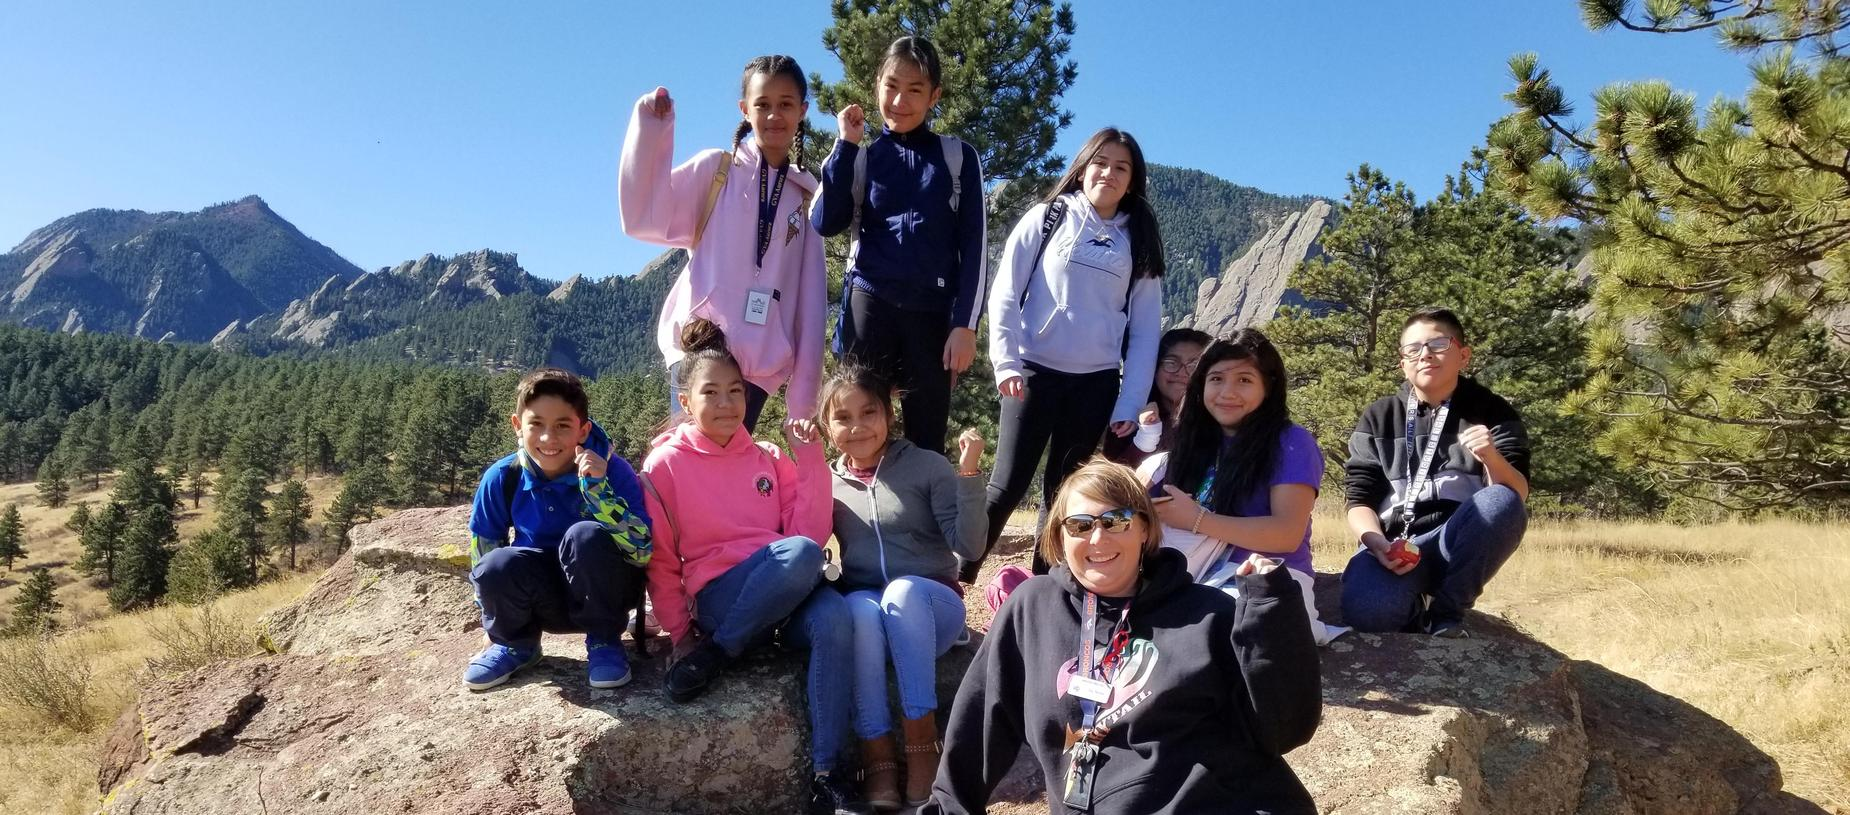 Middle schoolers at Chautauqua Park in Boulder